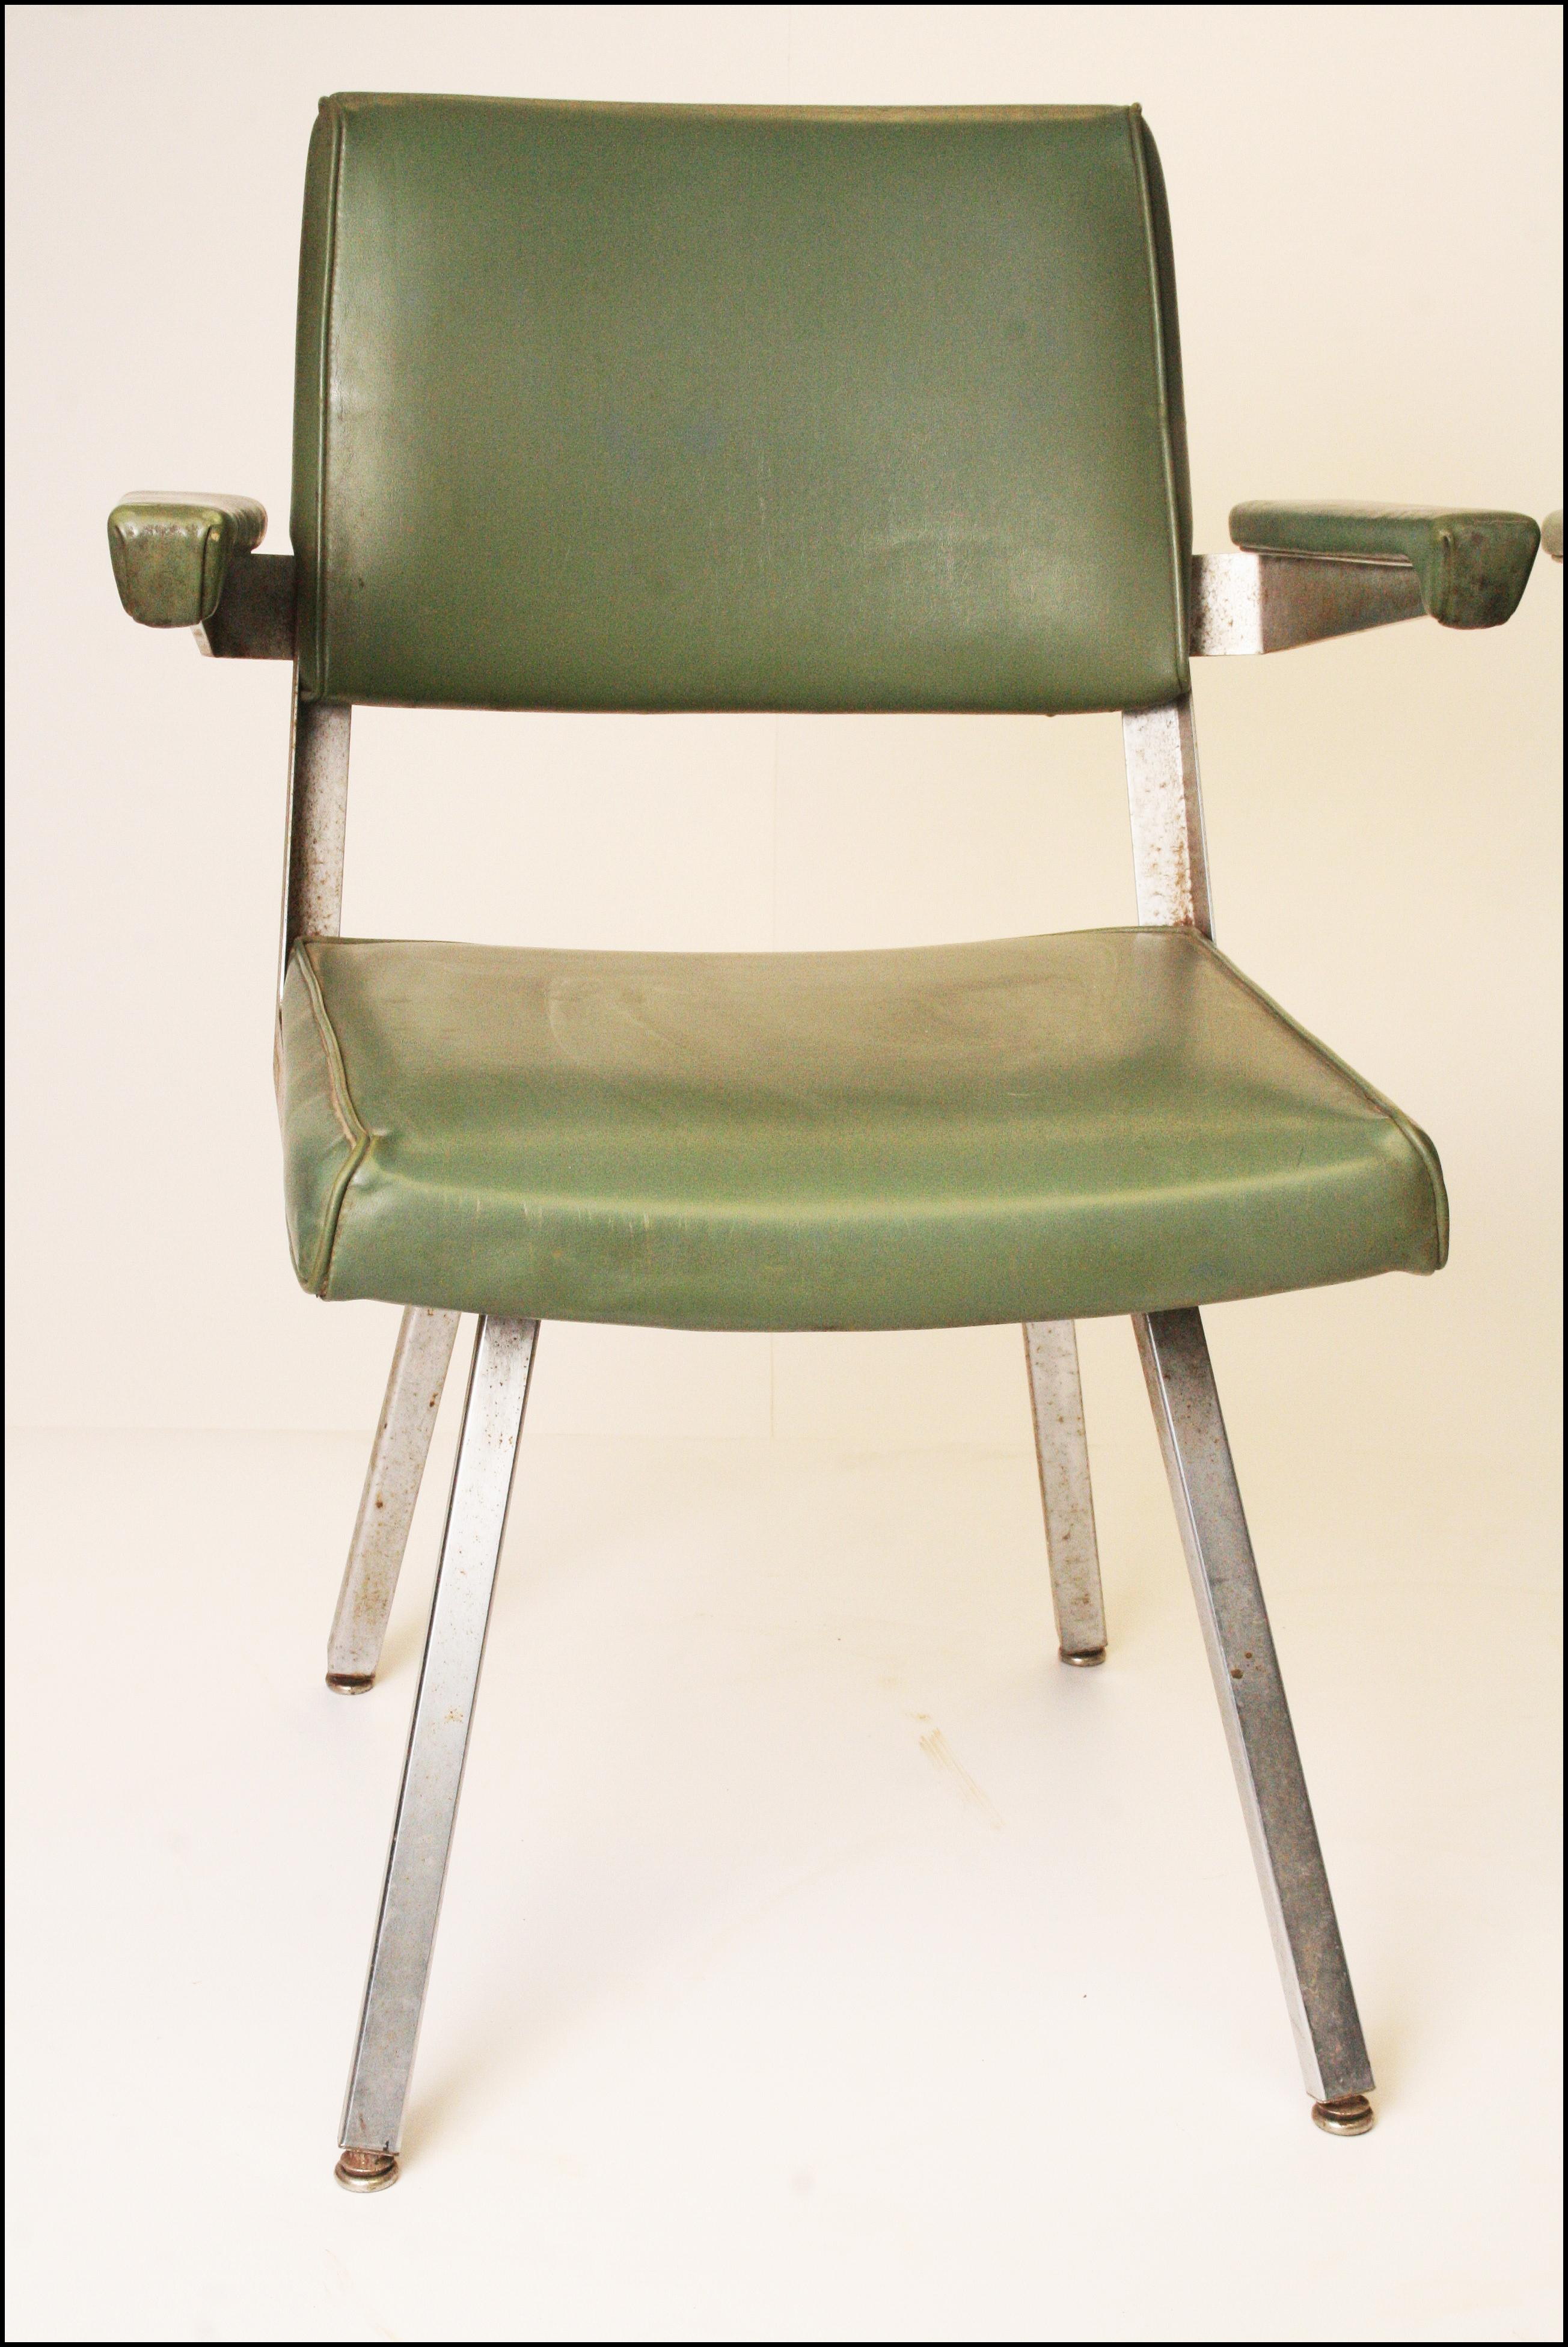 Harter Mid Century Modern Industrial Office Chairs  A Pair   Image 3 Of 11